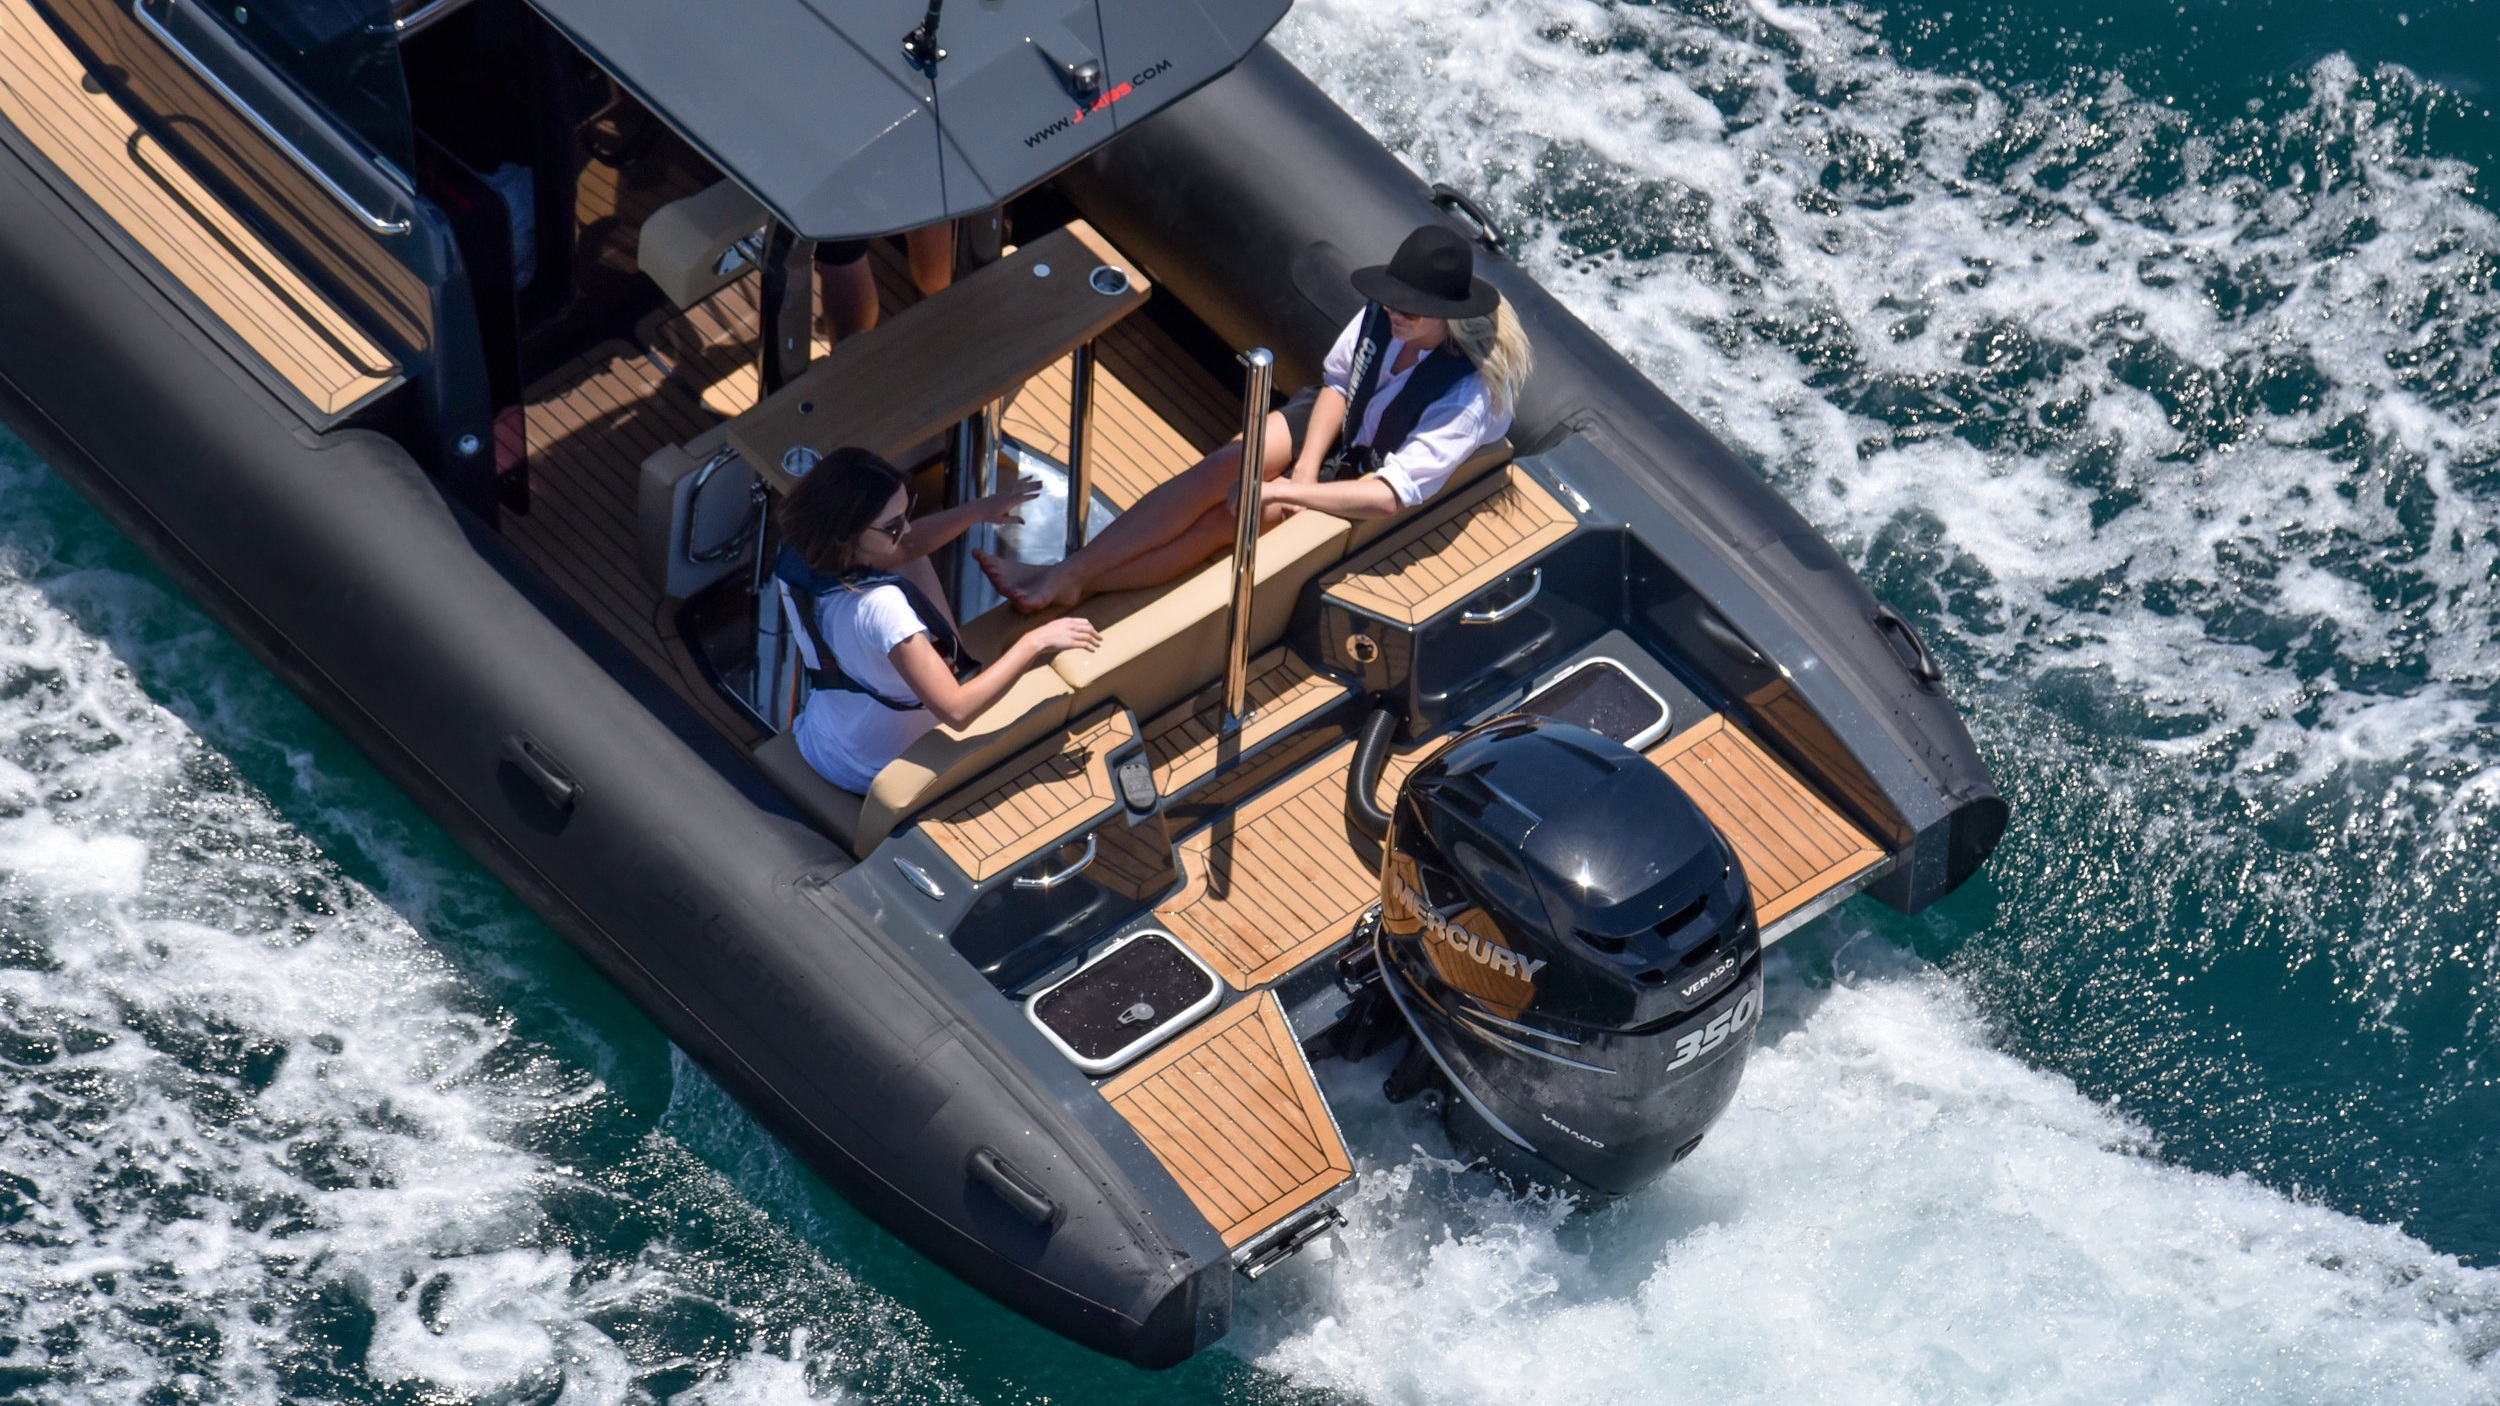 Custom 800 CABIN - Our Custom 800 Cabin was hand-crafted on the beaches of New Zealand's subtropical north and designed with the attitude to face any weather conditions. It's a luxury vessel that performs without compromise, able…